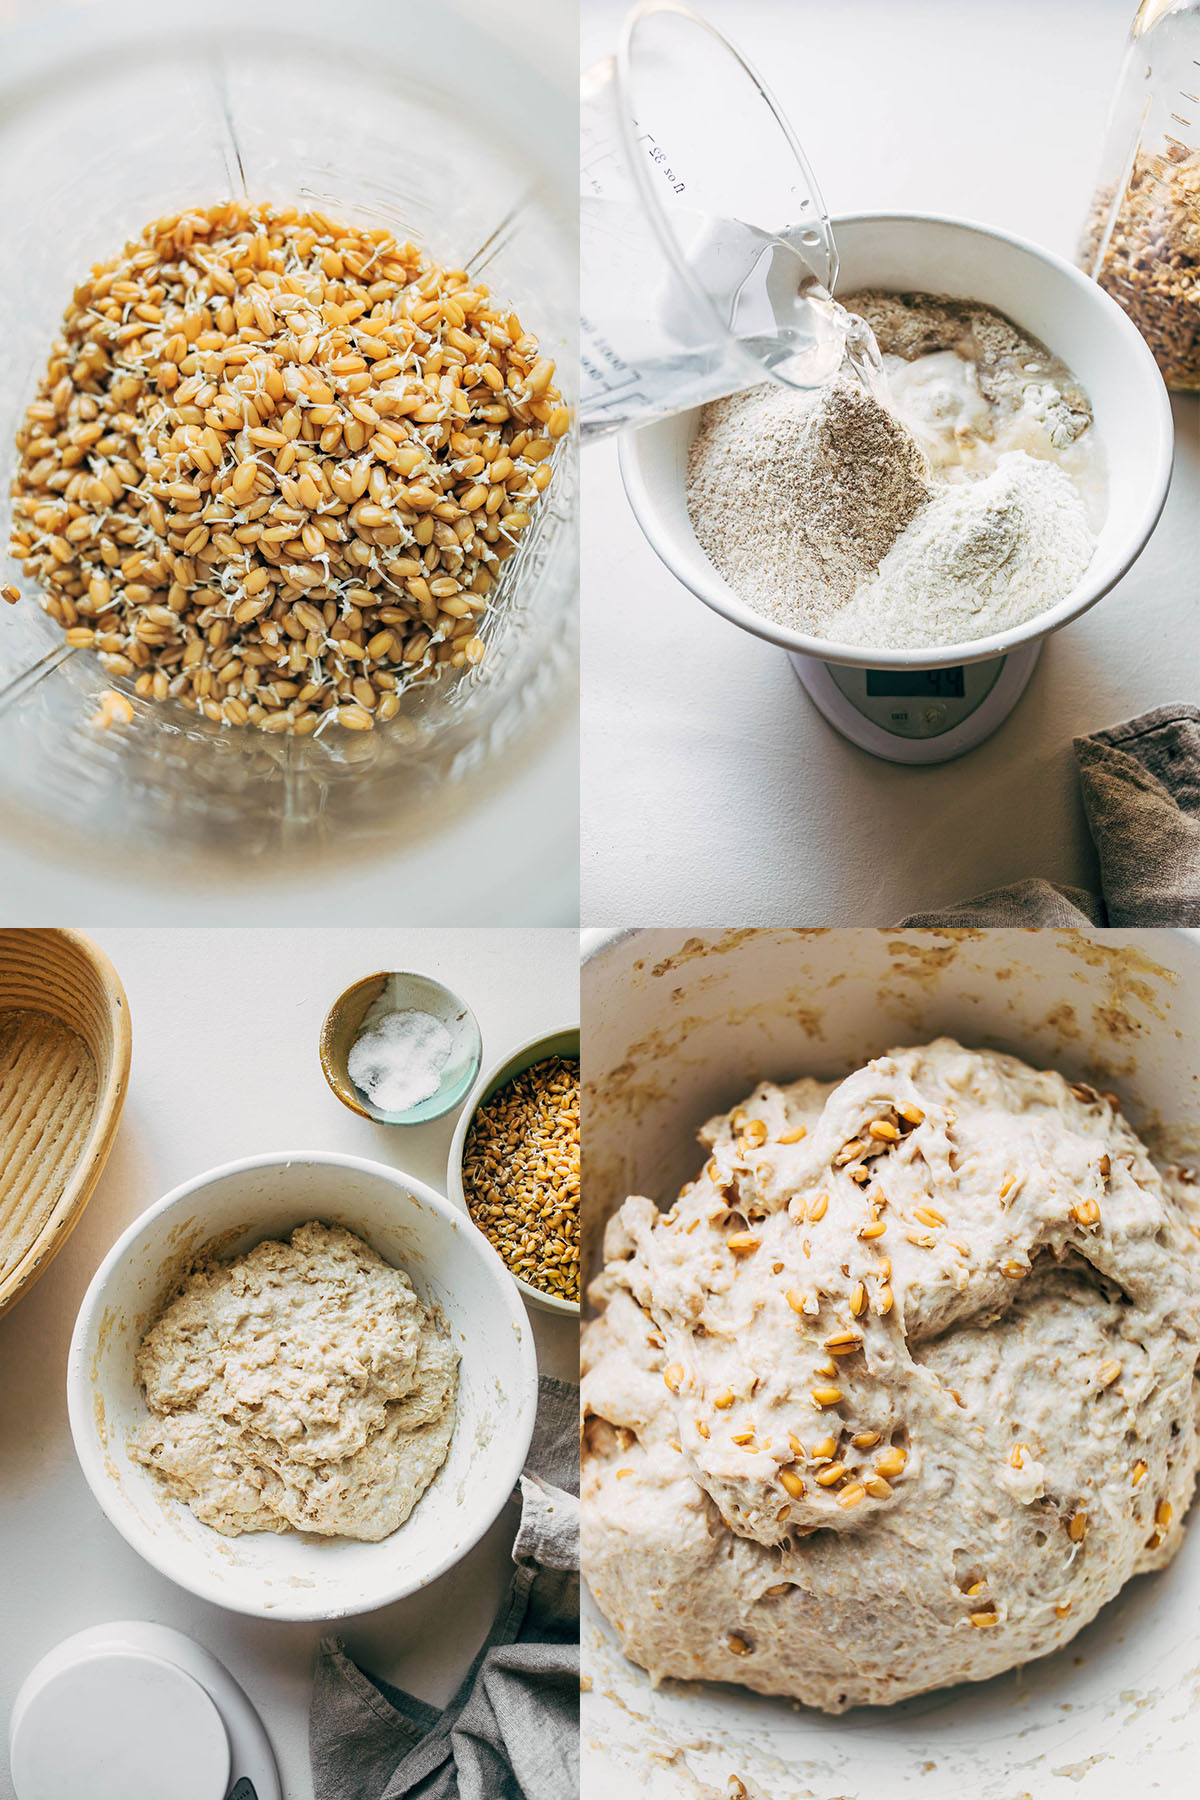 Four images, clockwise from top left: sprouted grains in a container, water being poured into the dry bread ingredients, dough with sprouted grains folded in, and a shaggy dough just after mixing.